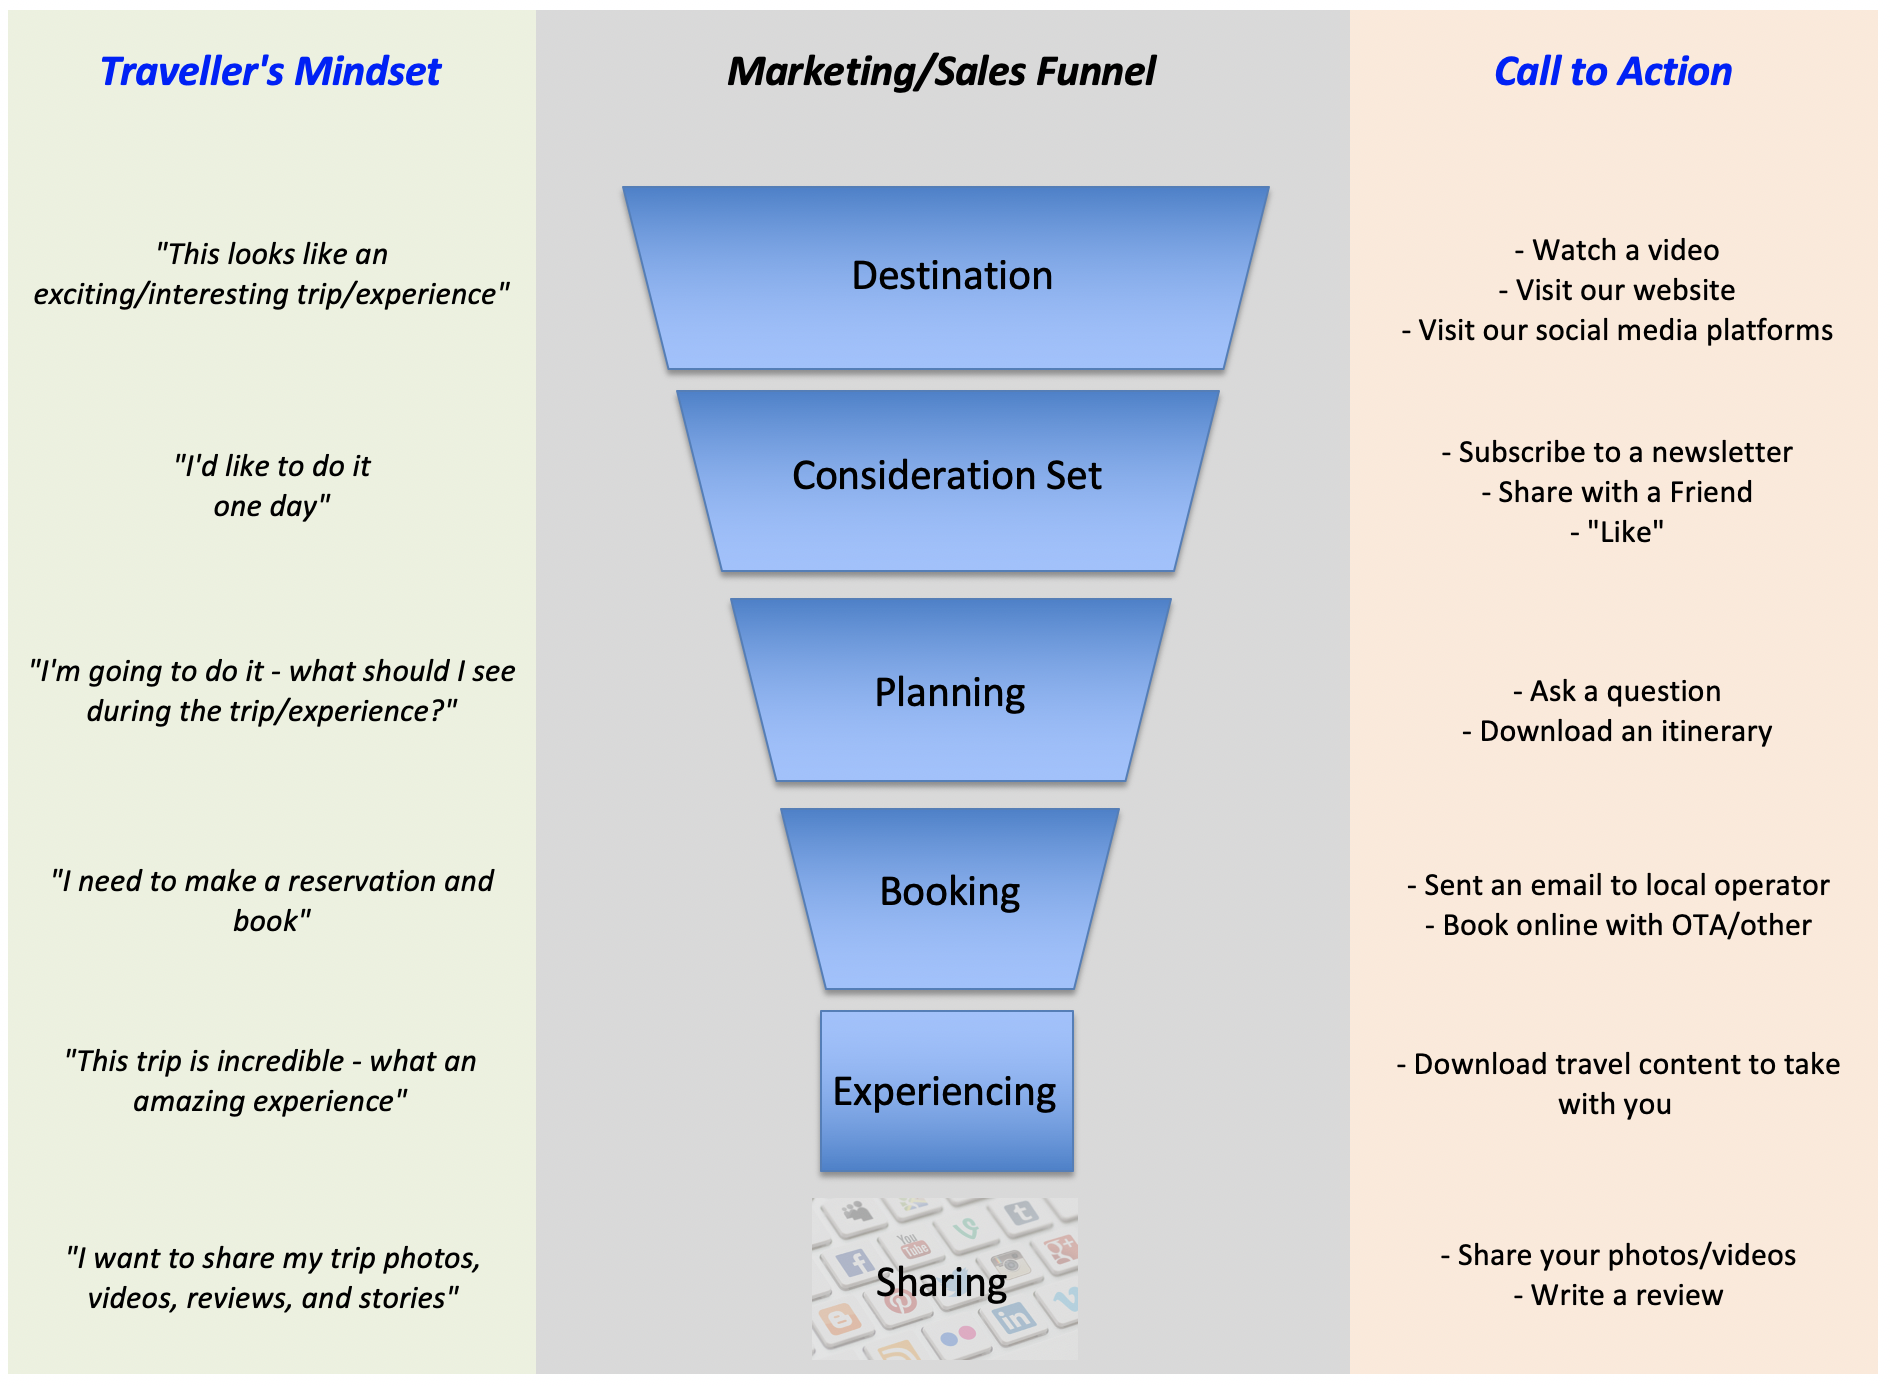 The Process through the Marketing/Sales Funnel